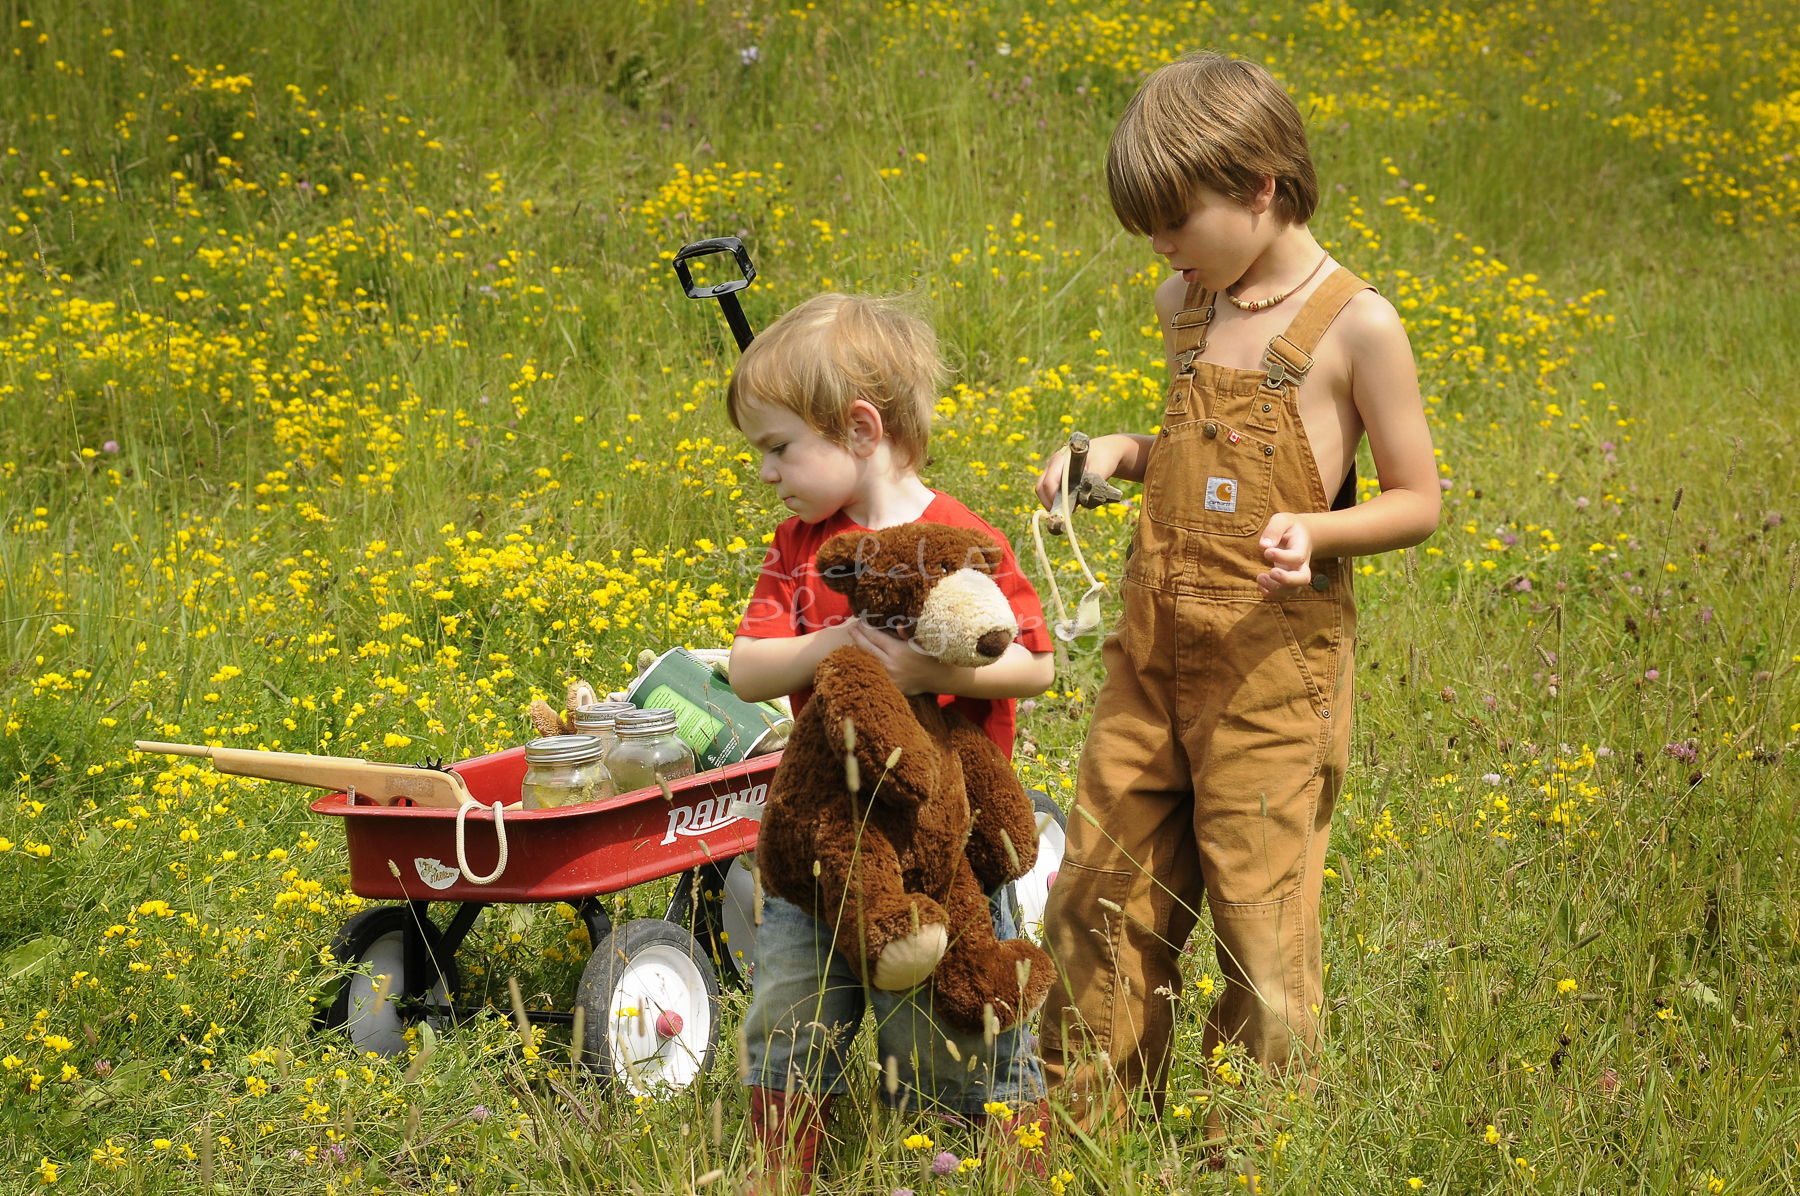 little boys with their wagon